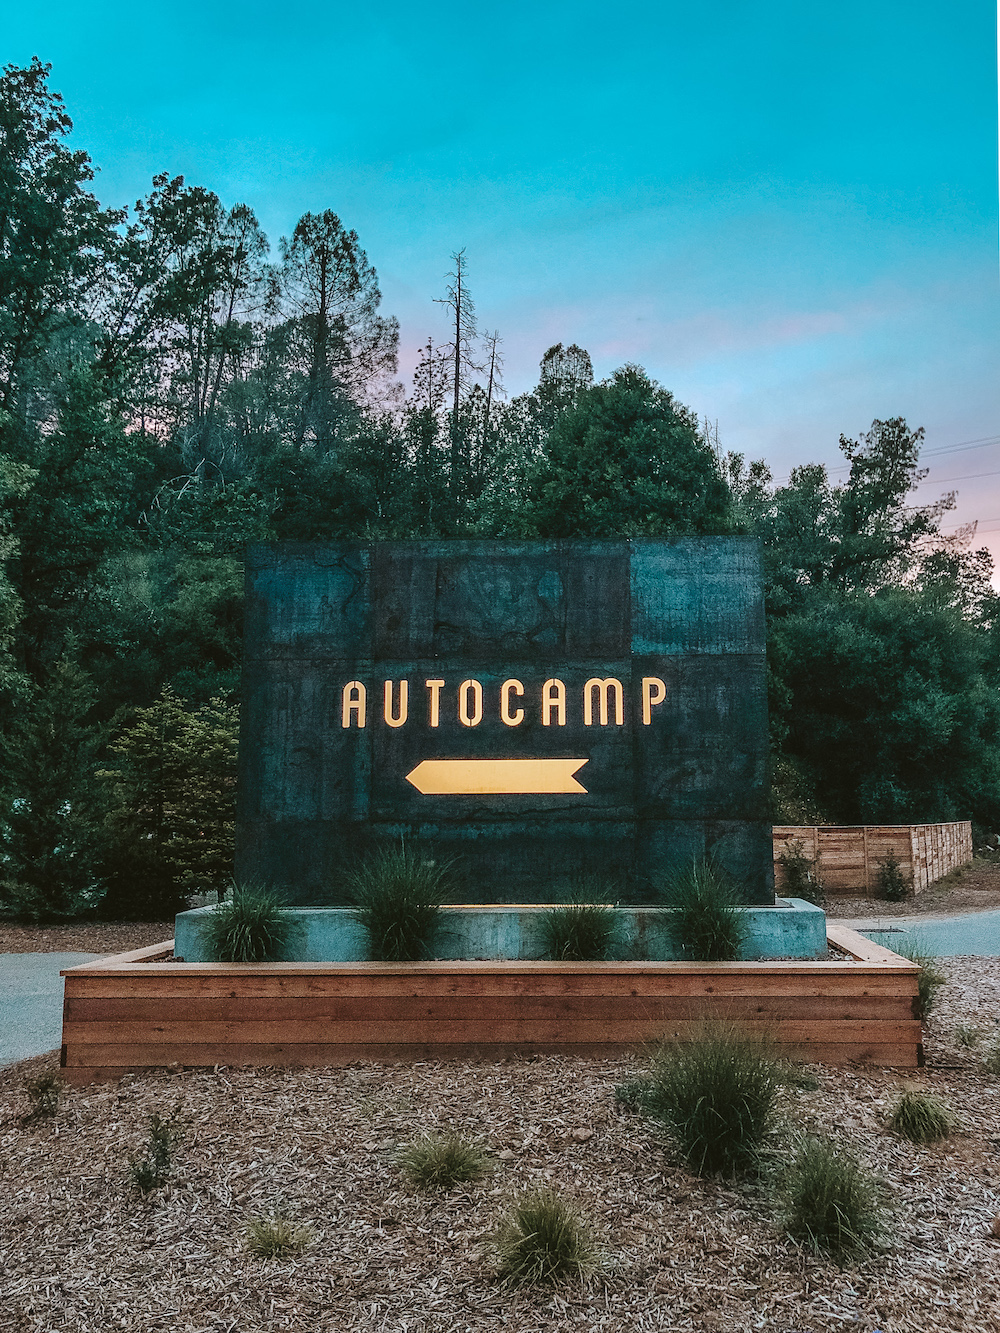 Autocamp Yosemite Entrance | Cedar + Surf